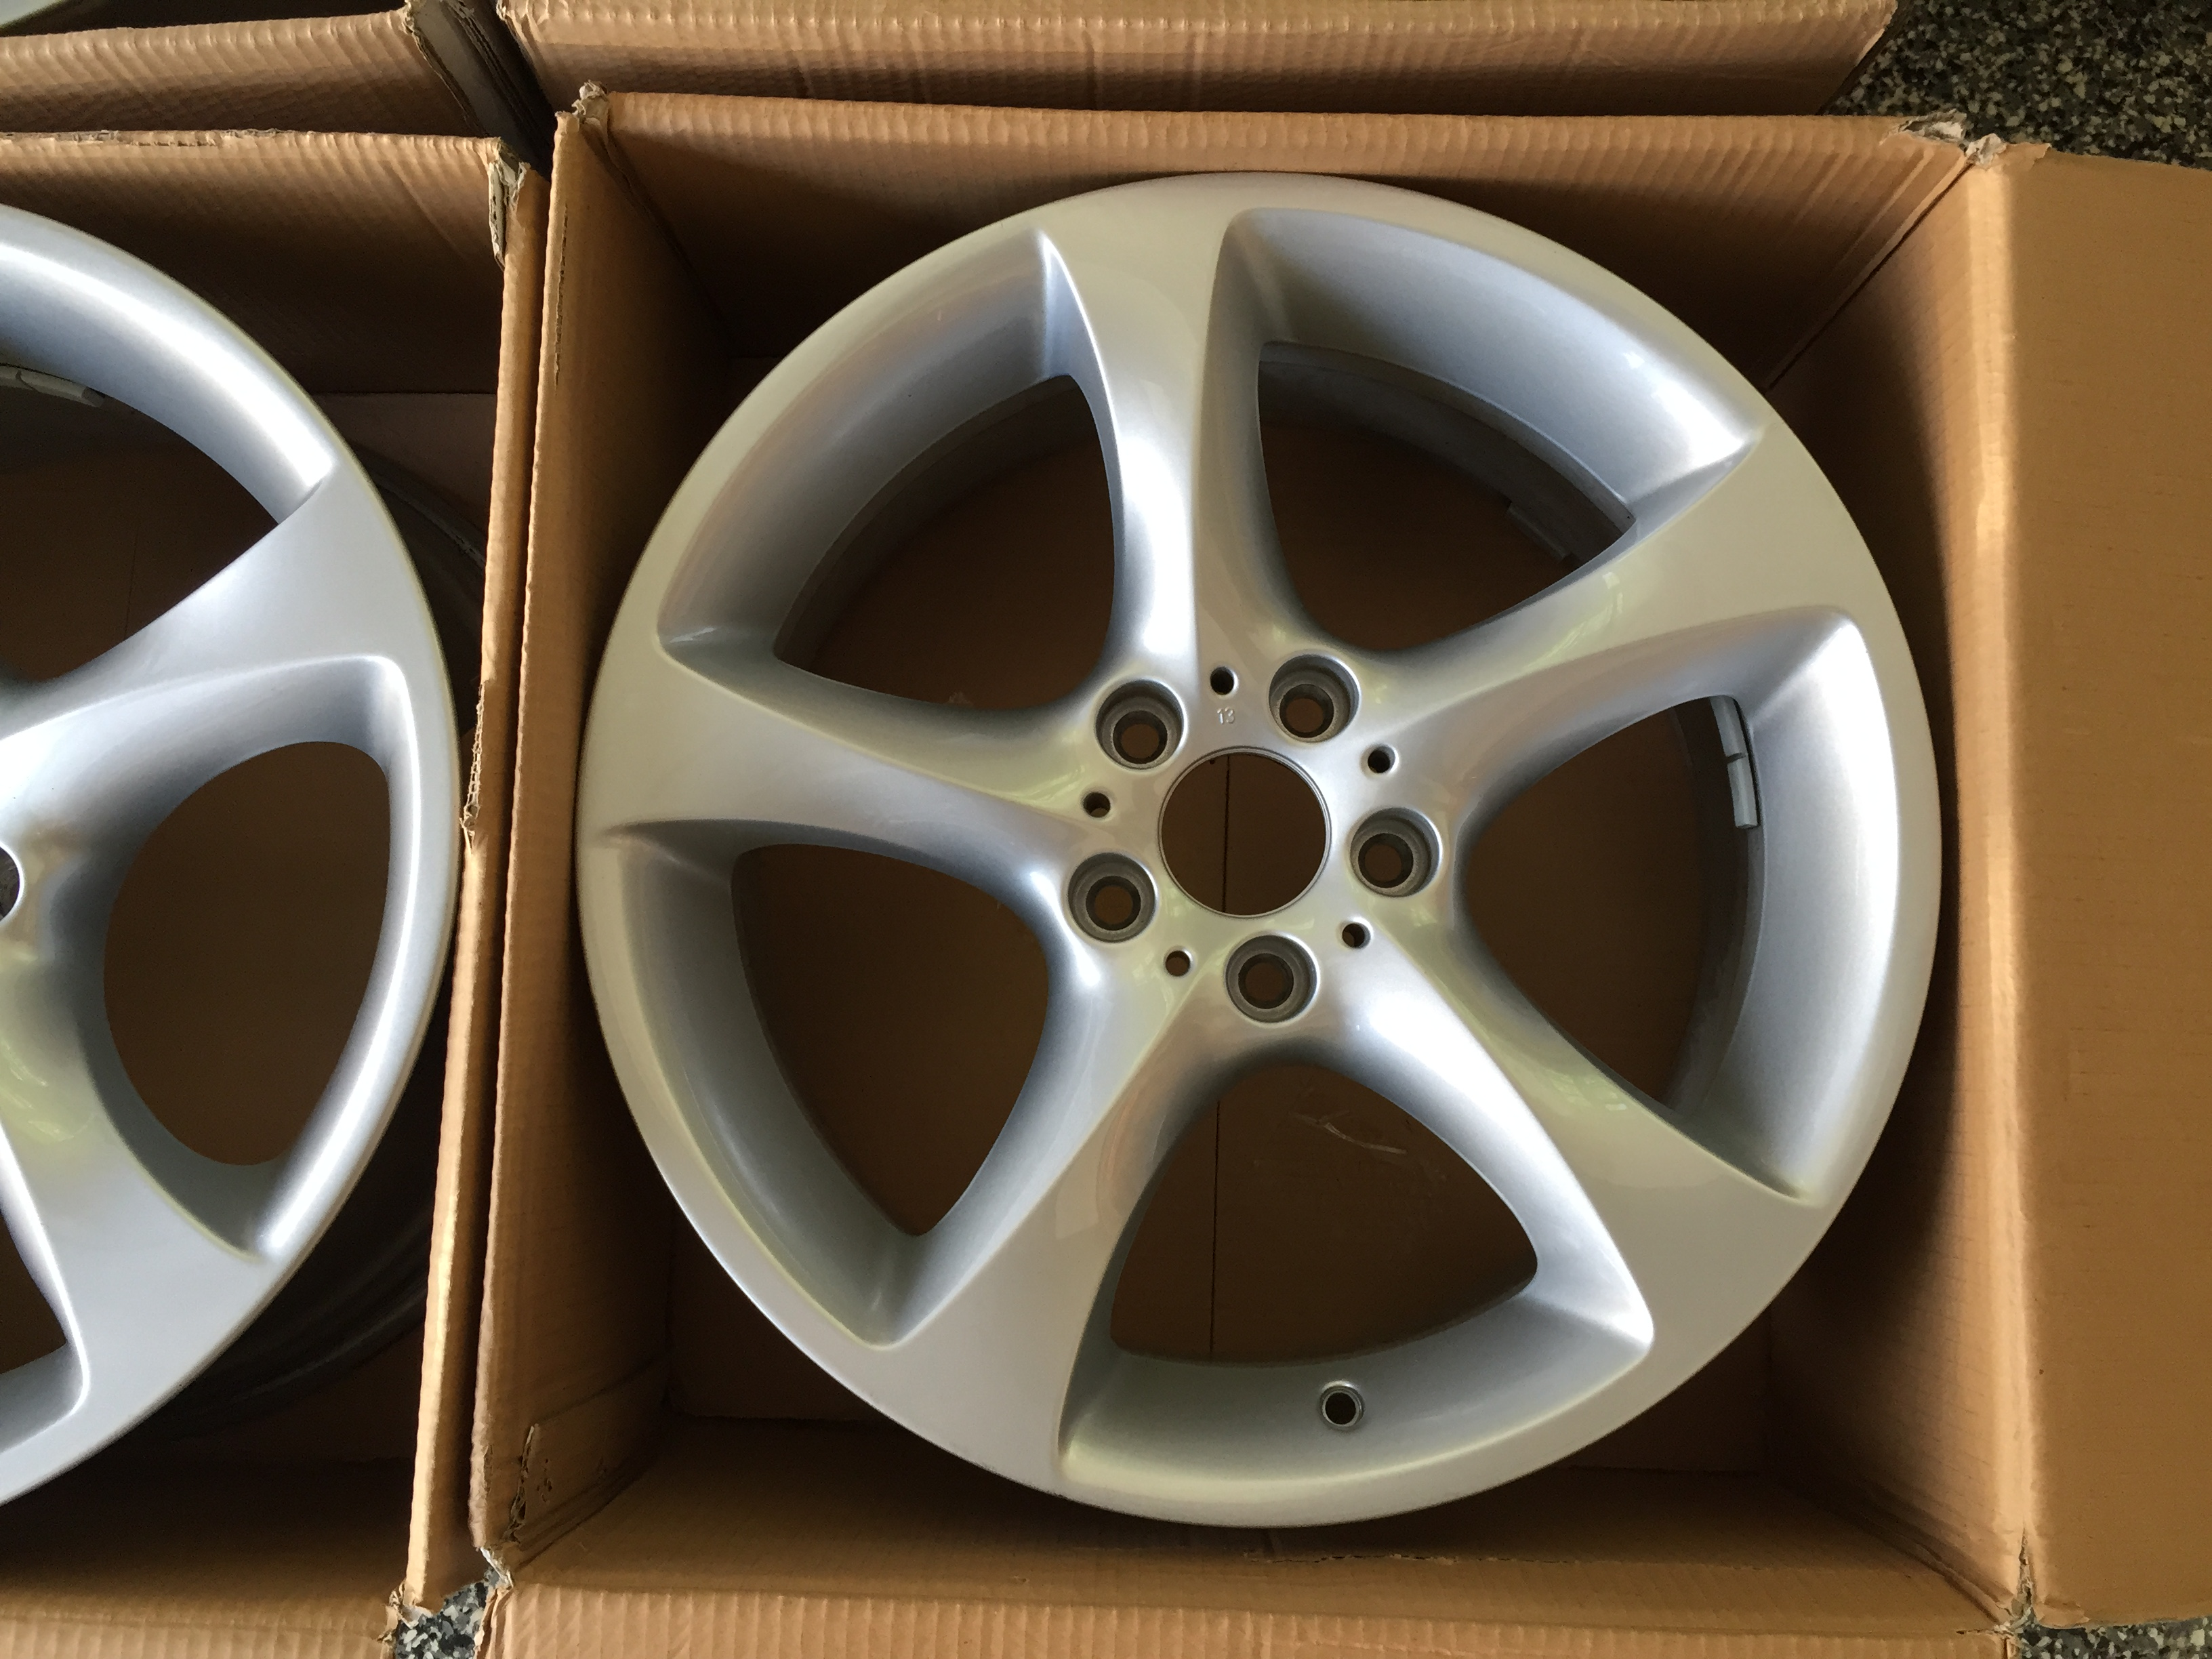 Bmw 2013 335i 19 Star Spoke Alloy Wheels Silver